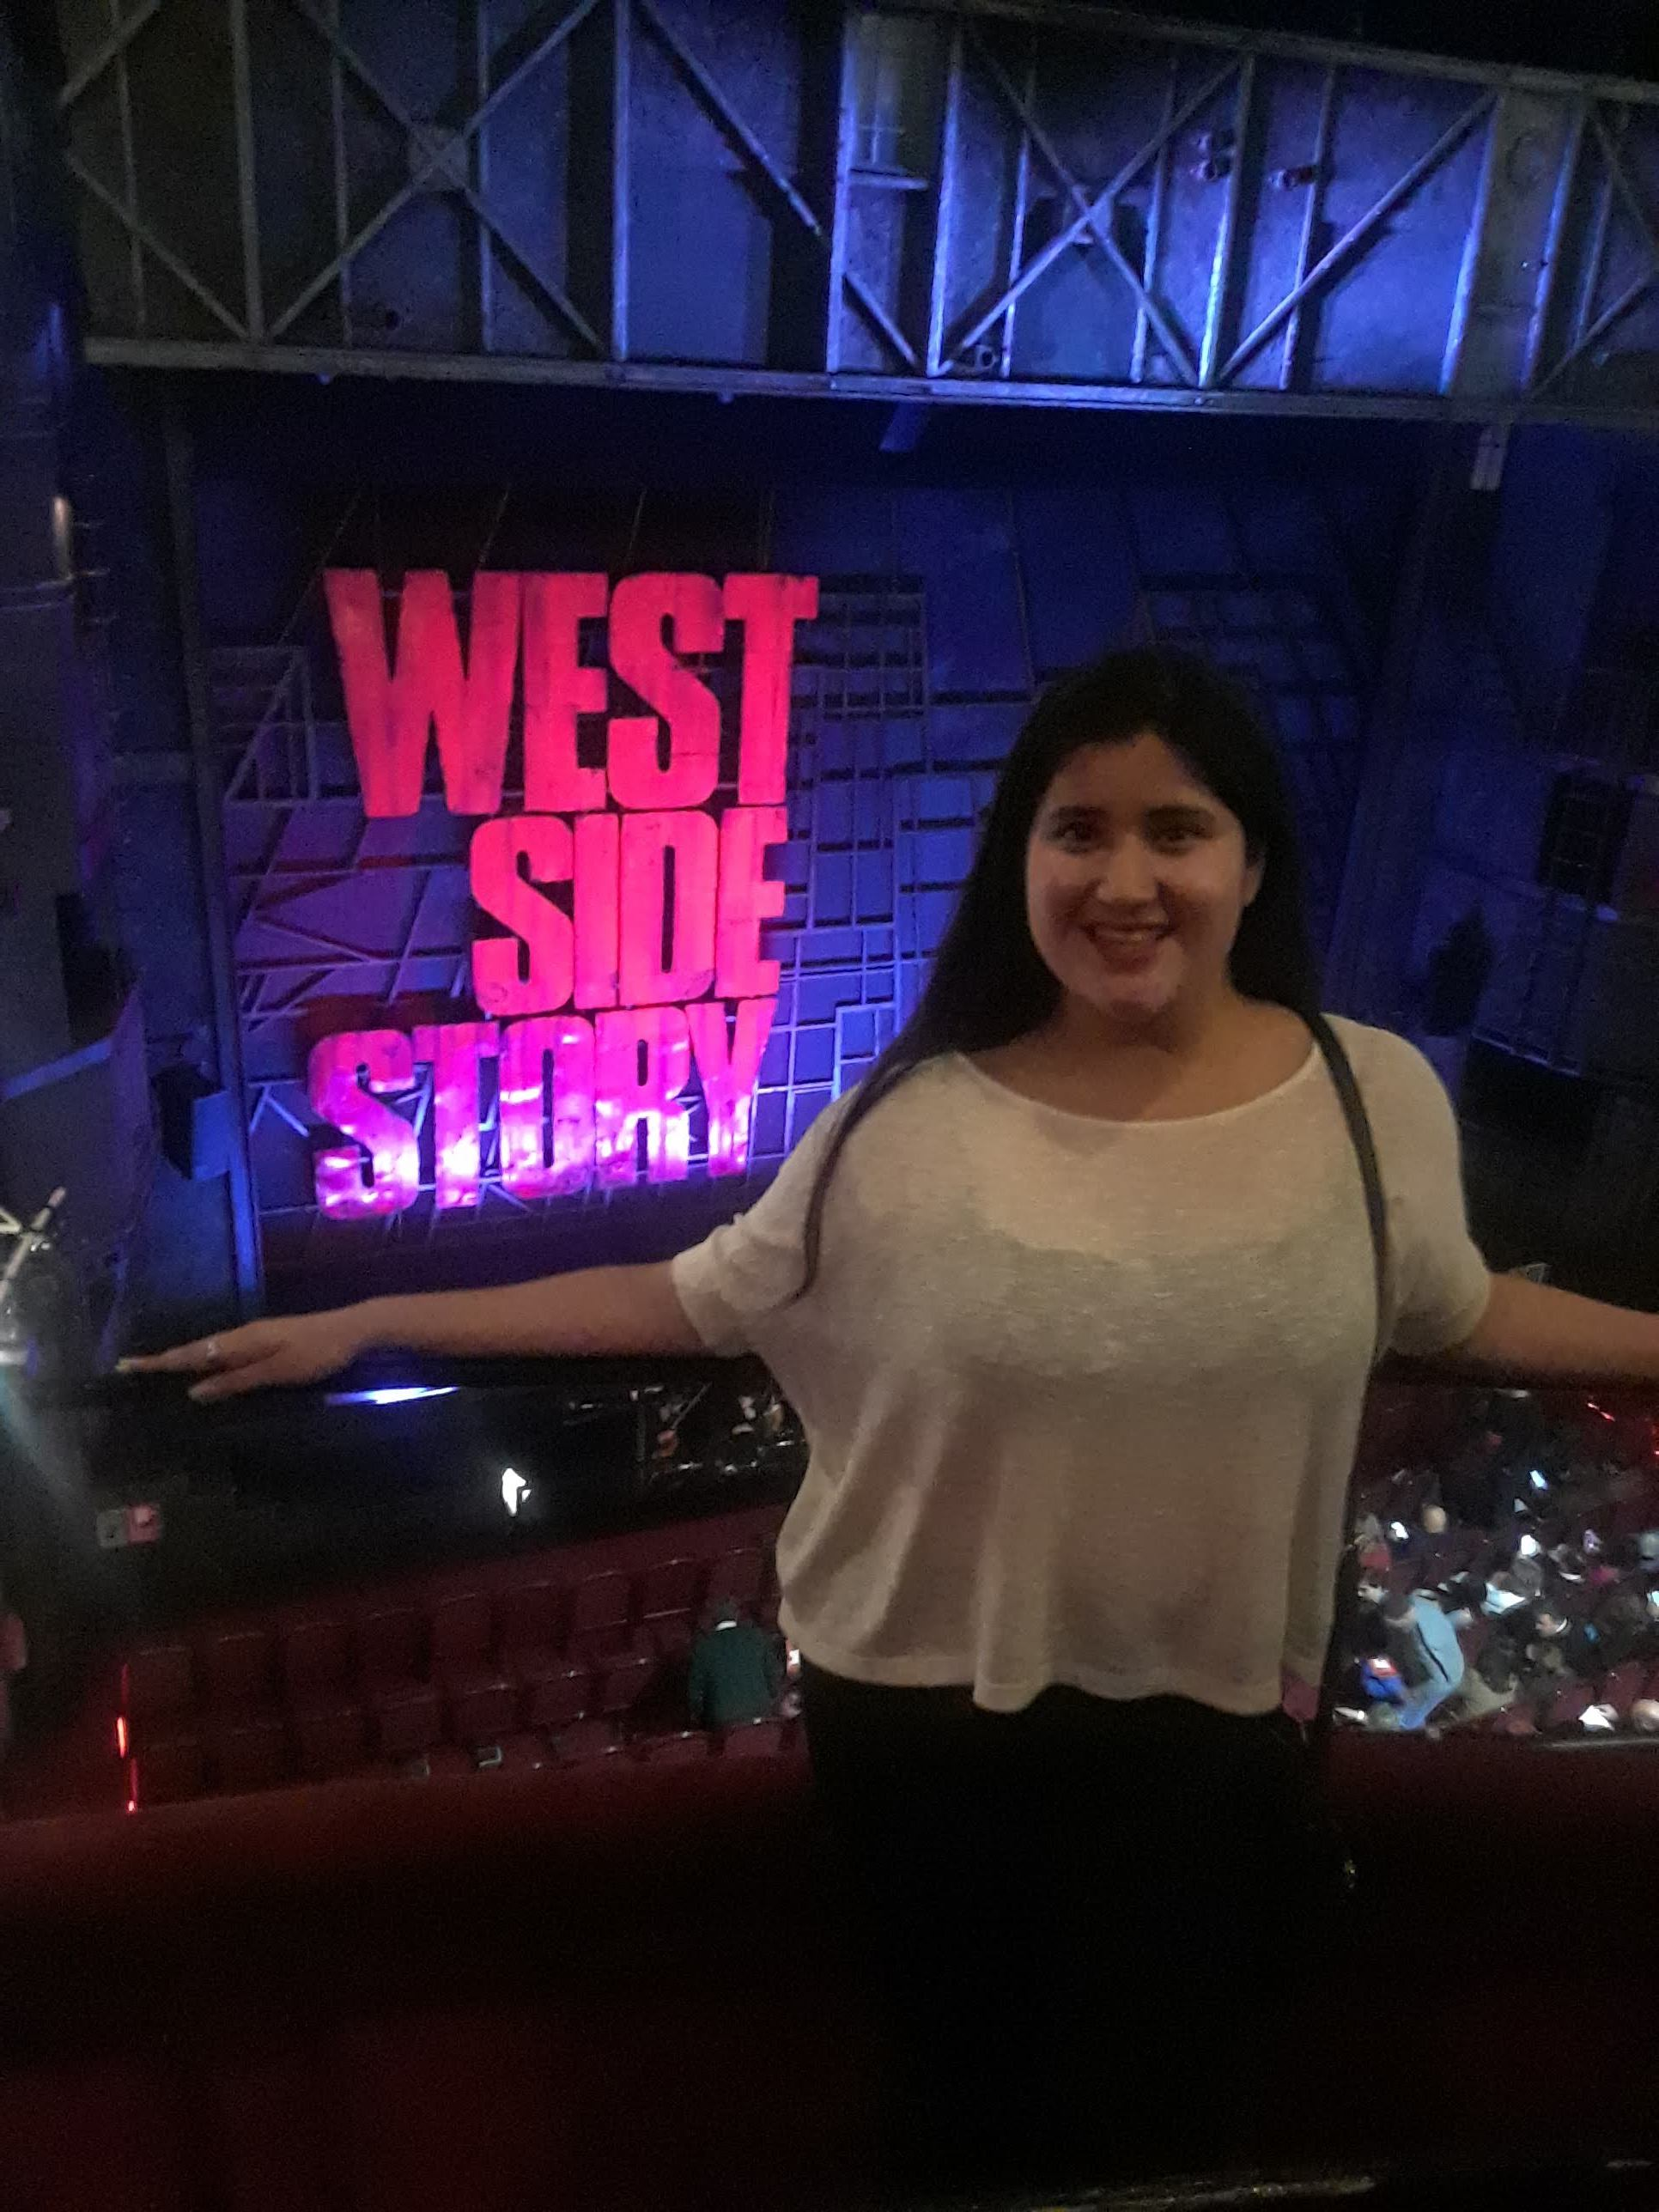 West Side Story at the Teatro Calderón